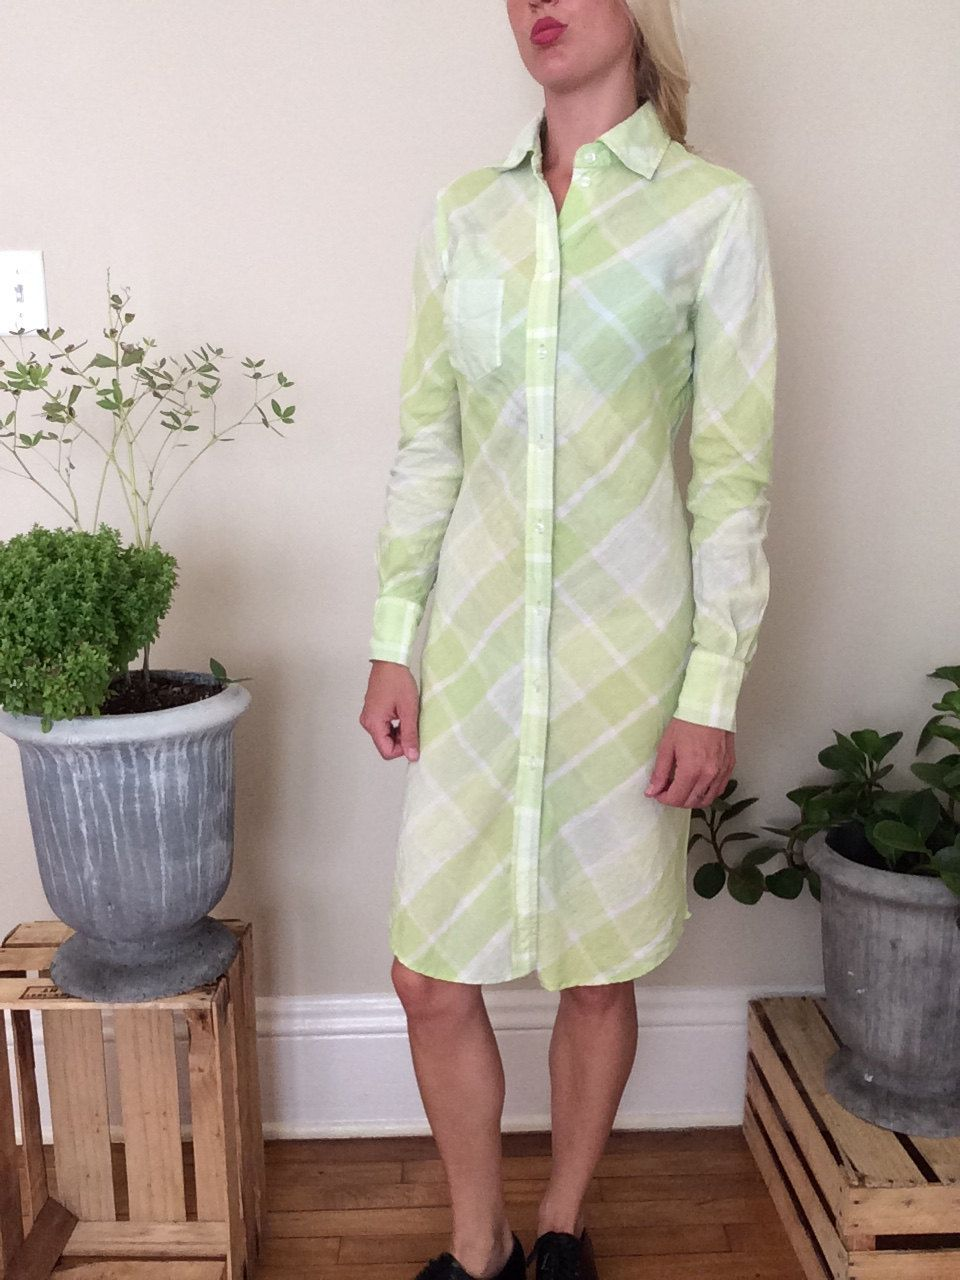 Flannel shirt trend  Lime green plaid shirt style dress by Donovanshop on Etsy  My shop